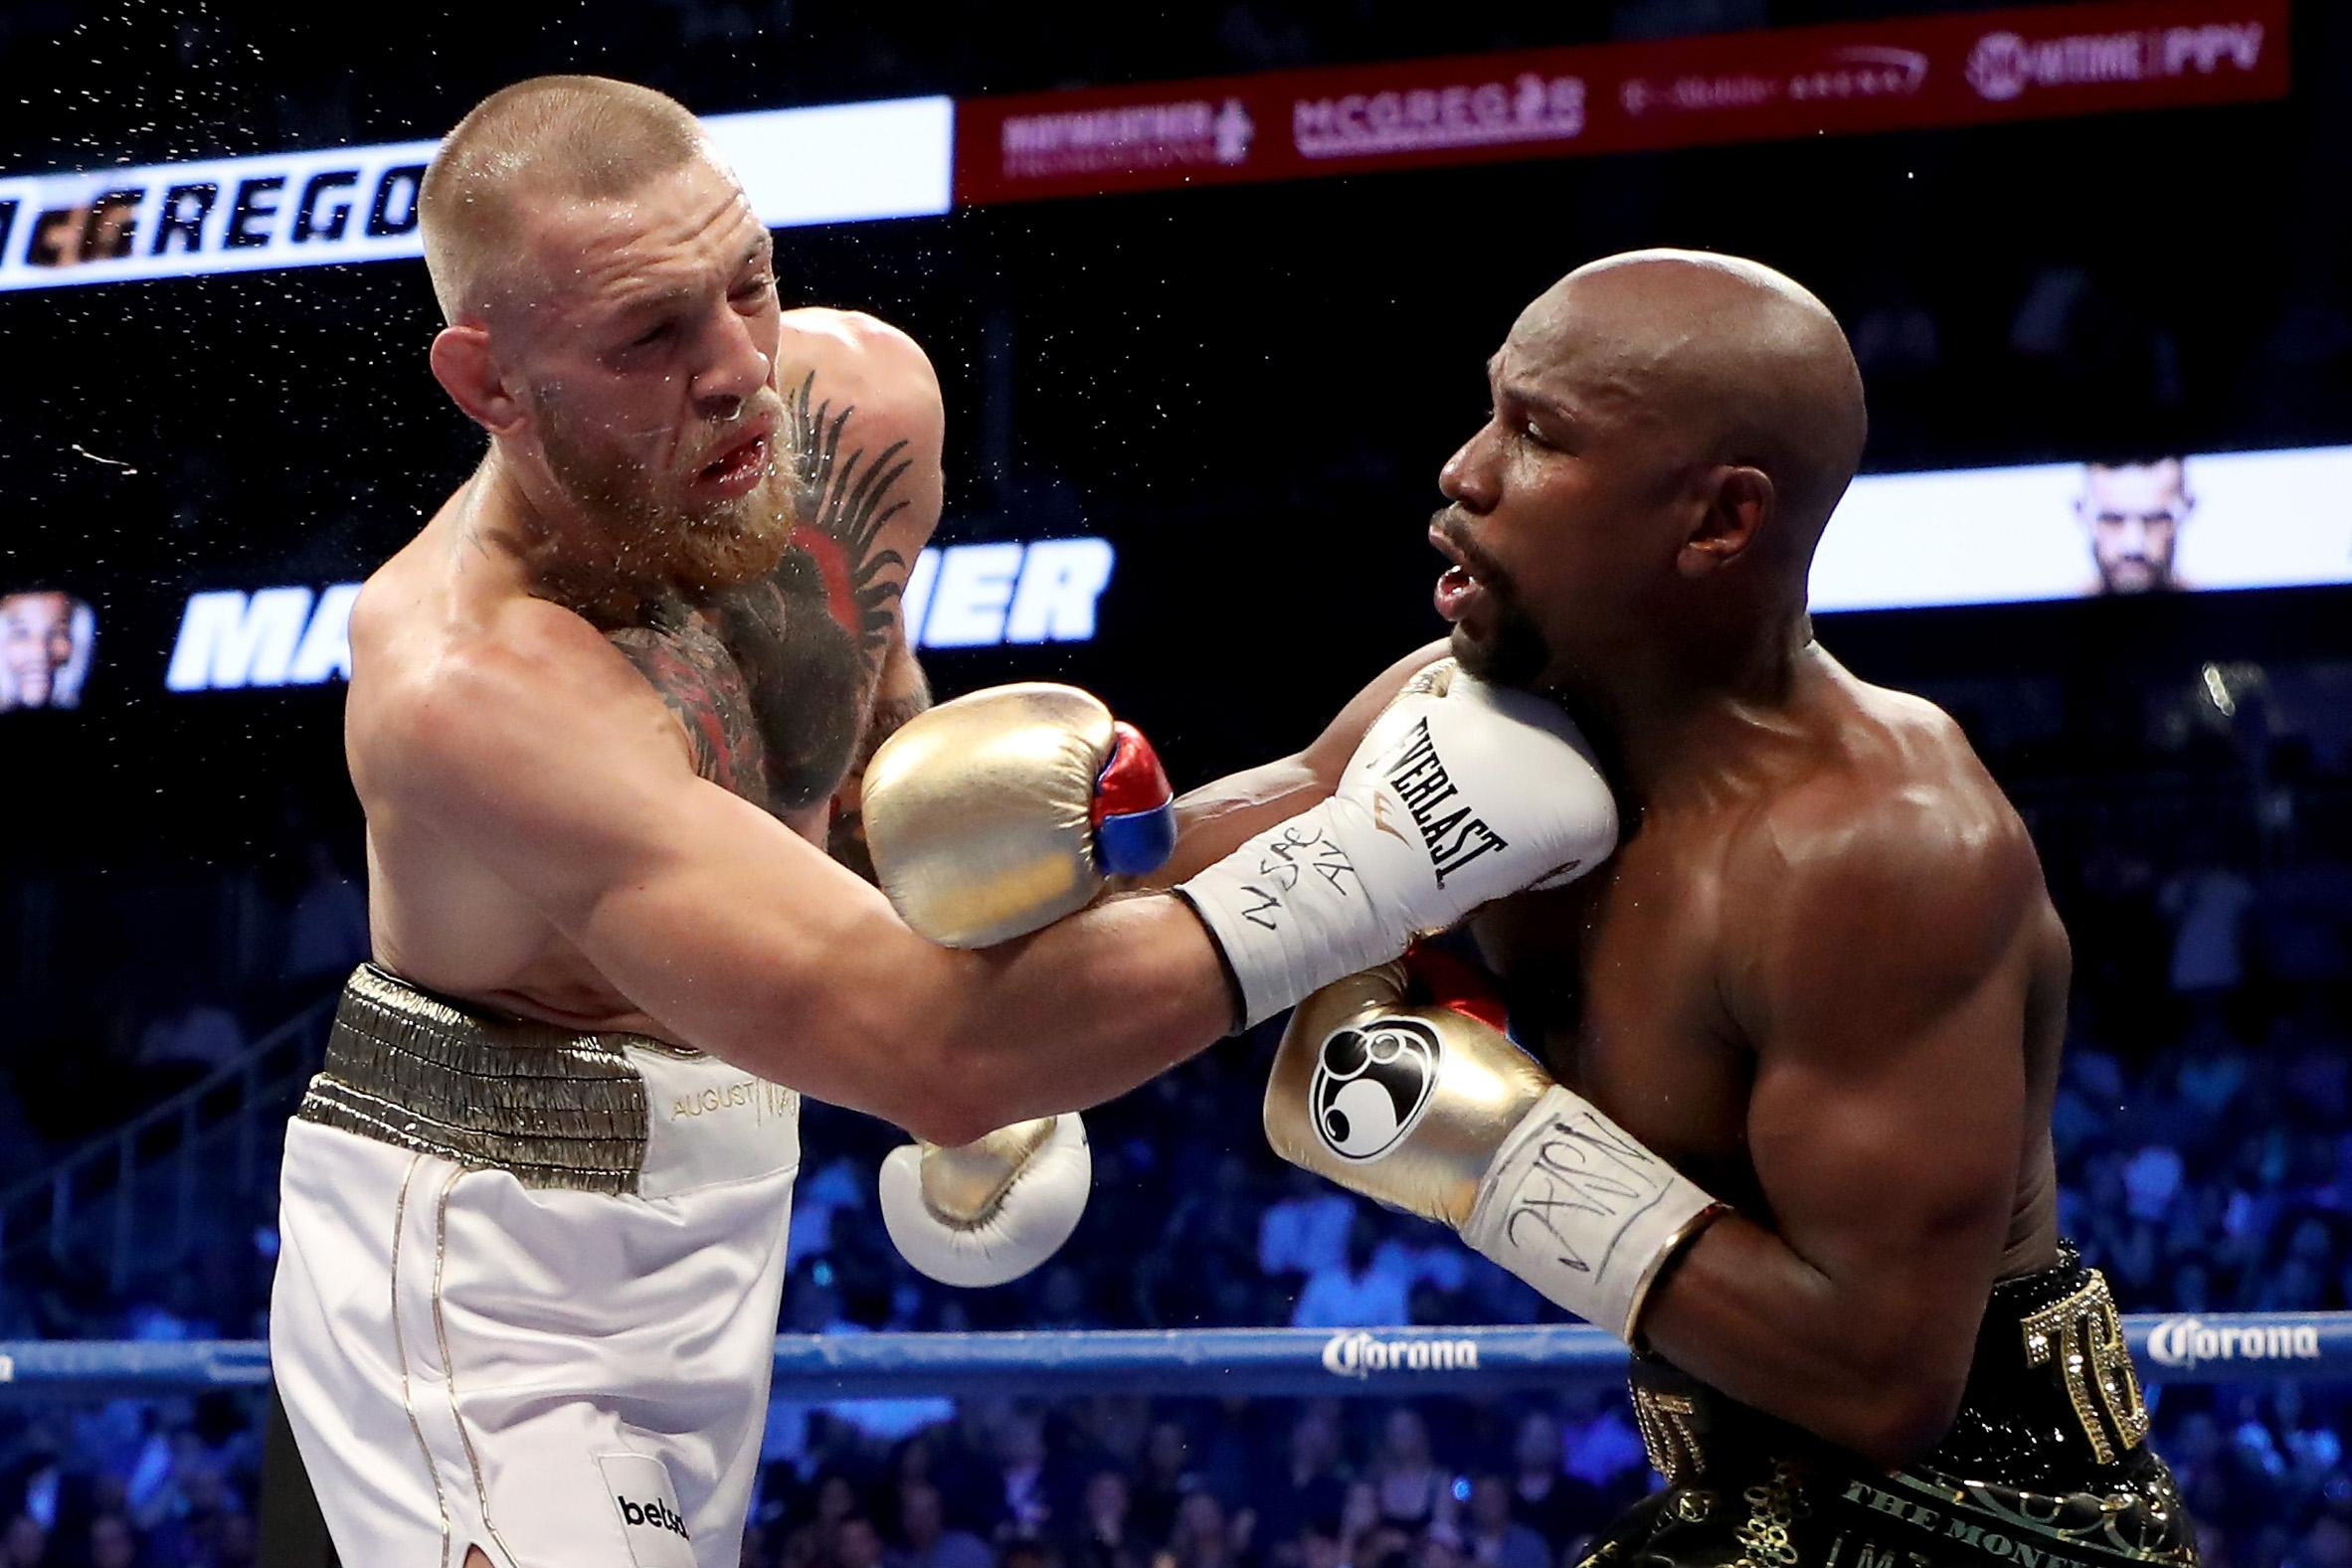 Floyd Mayweather came out of retirement to beat Conor McGregor last year